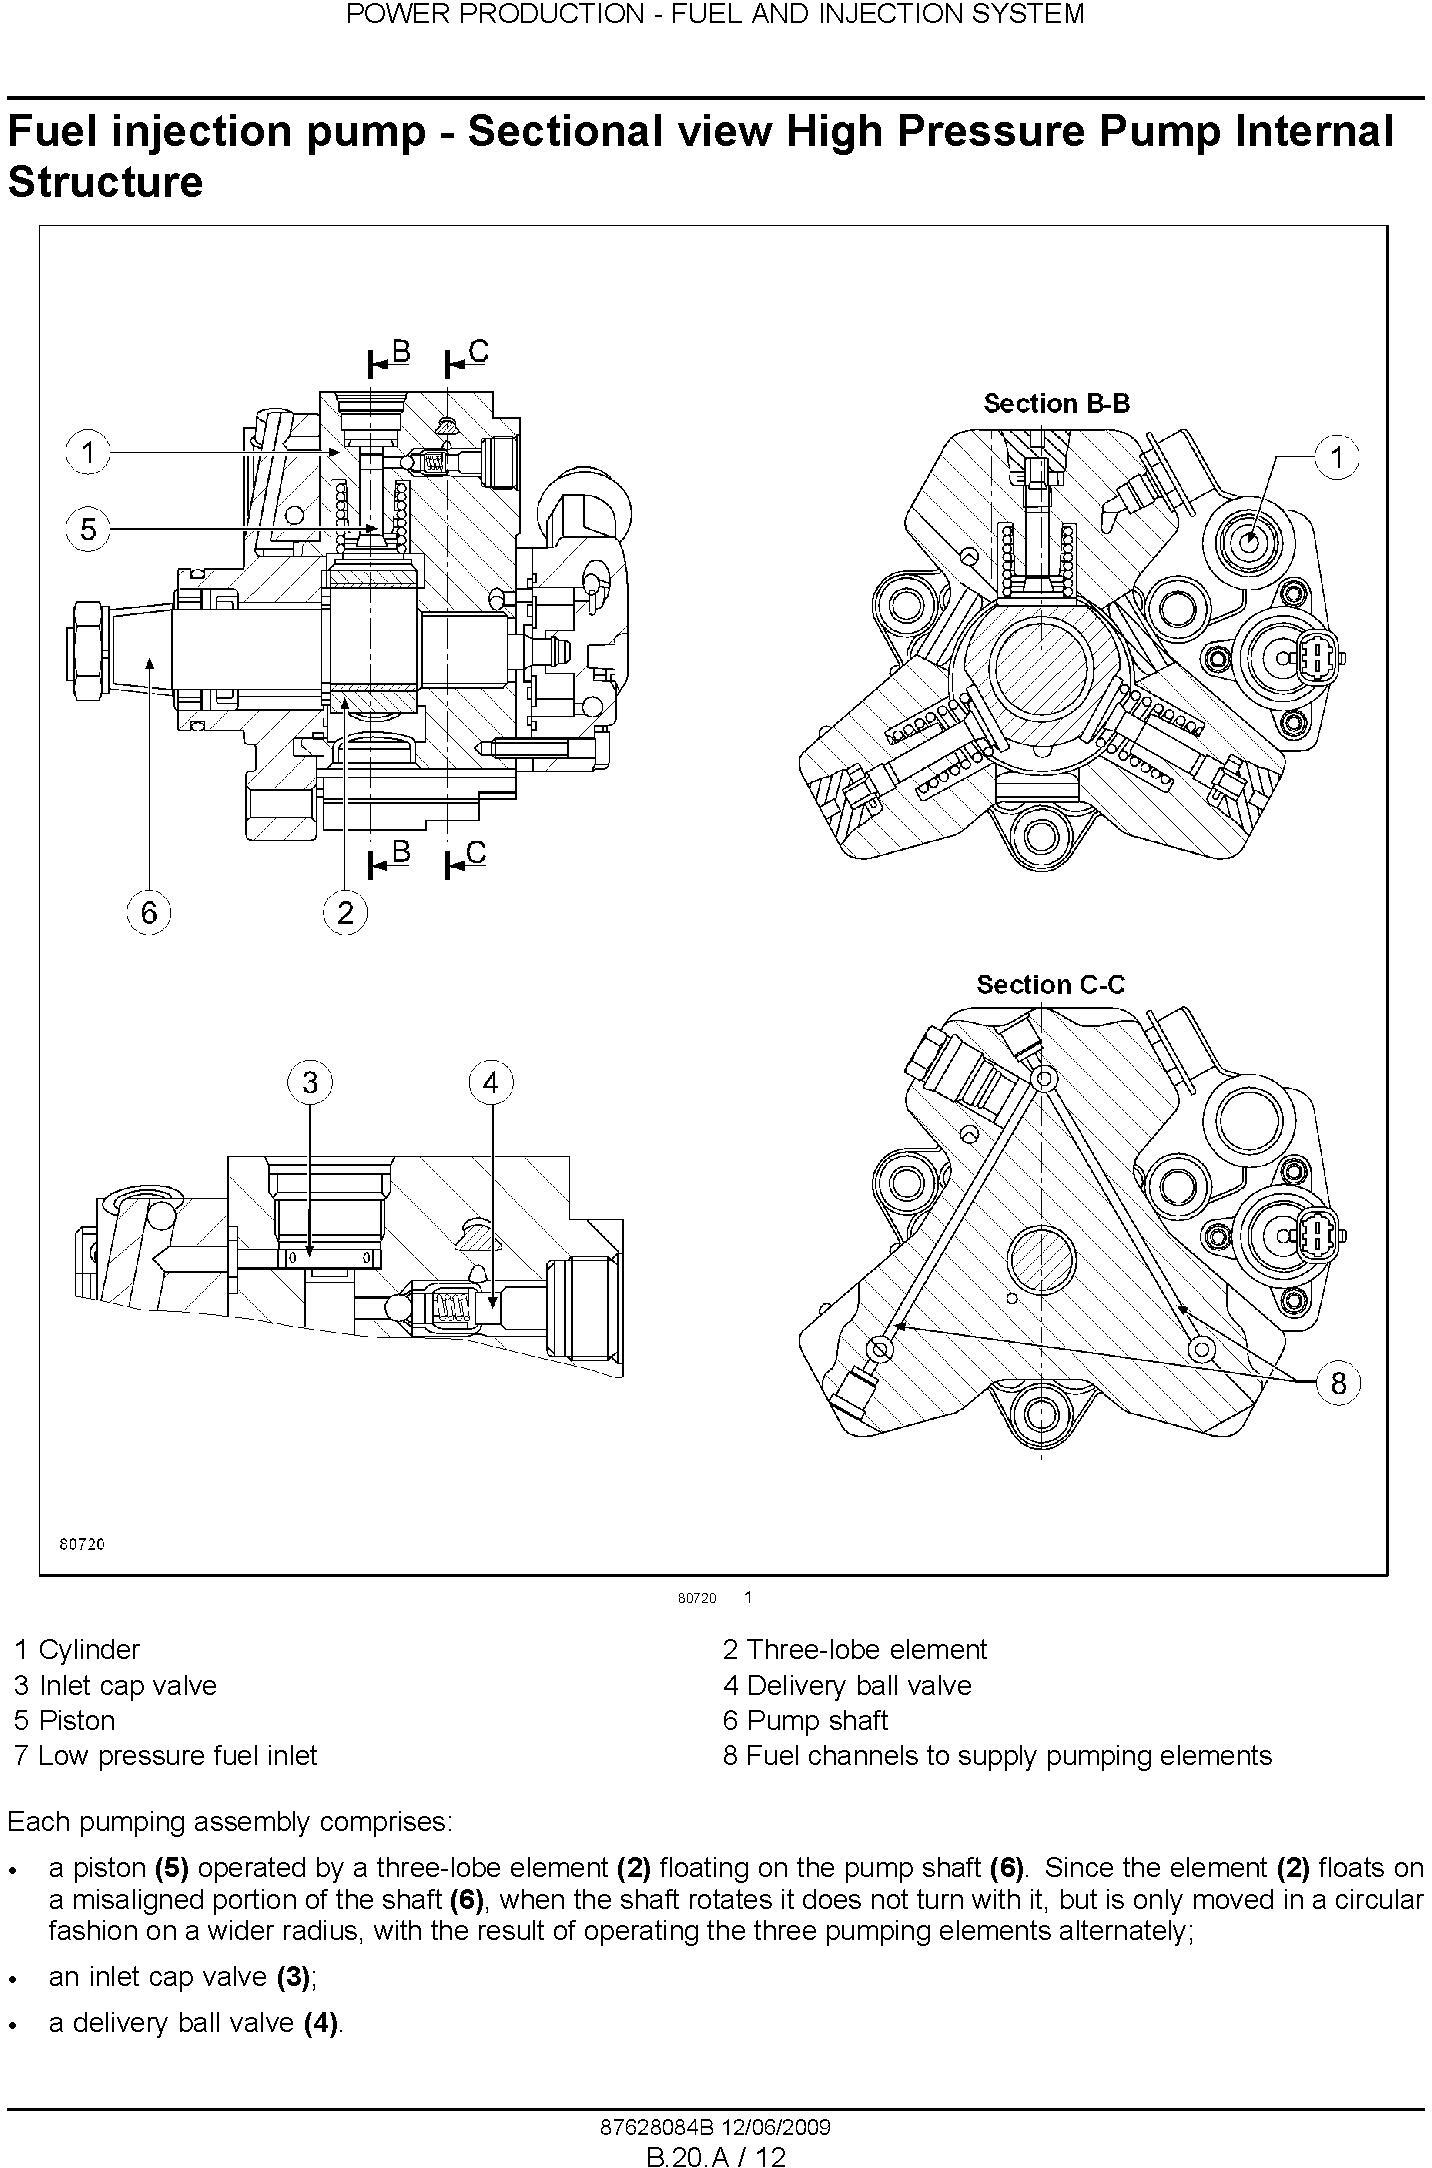 New Holland T7030, T7040, T7050, T7060 Tractor Service Manual - 3